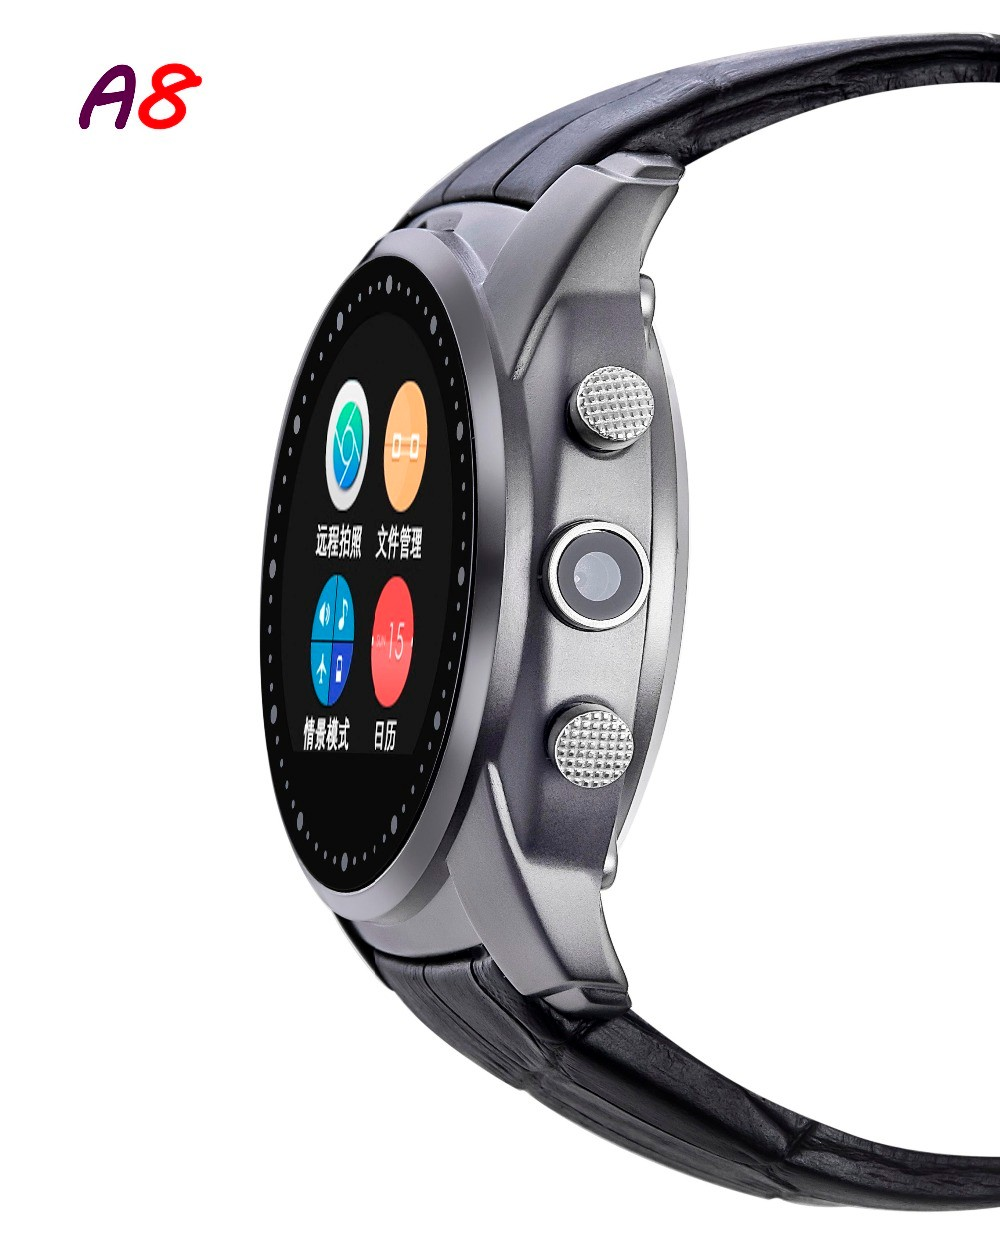 2016-Fashion-Smart-Watch-A8-Support-SIM-Card-Bluetooth-Sim-Watch-Round-Dial-Alloy-Material-Leather (2)